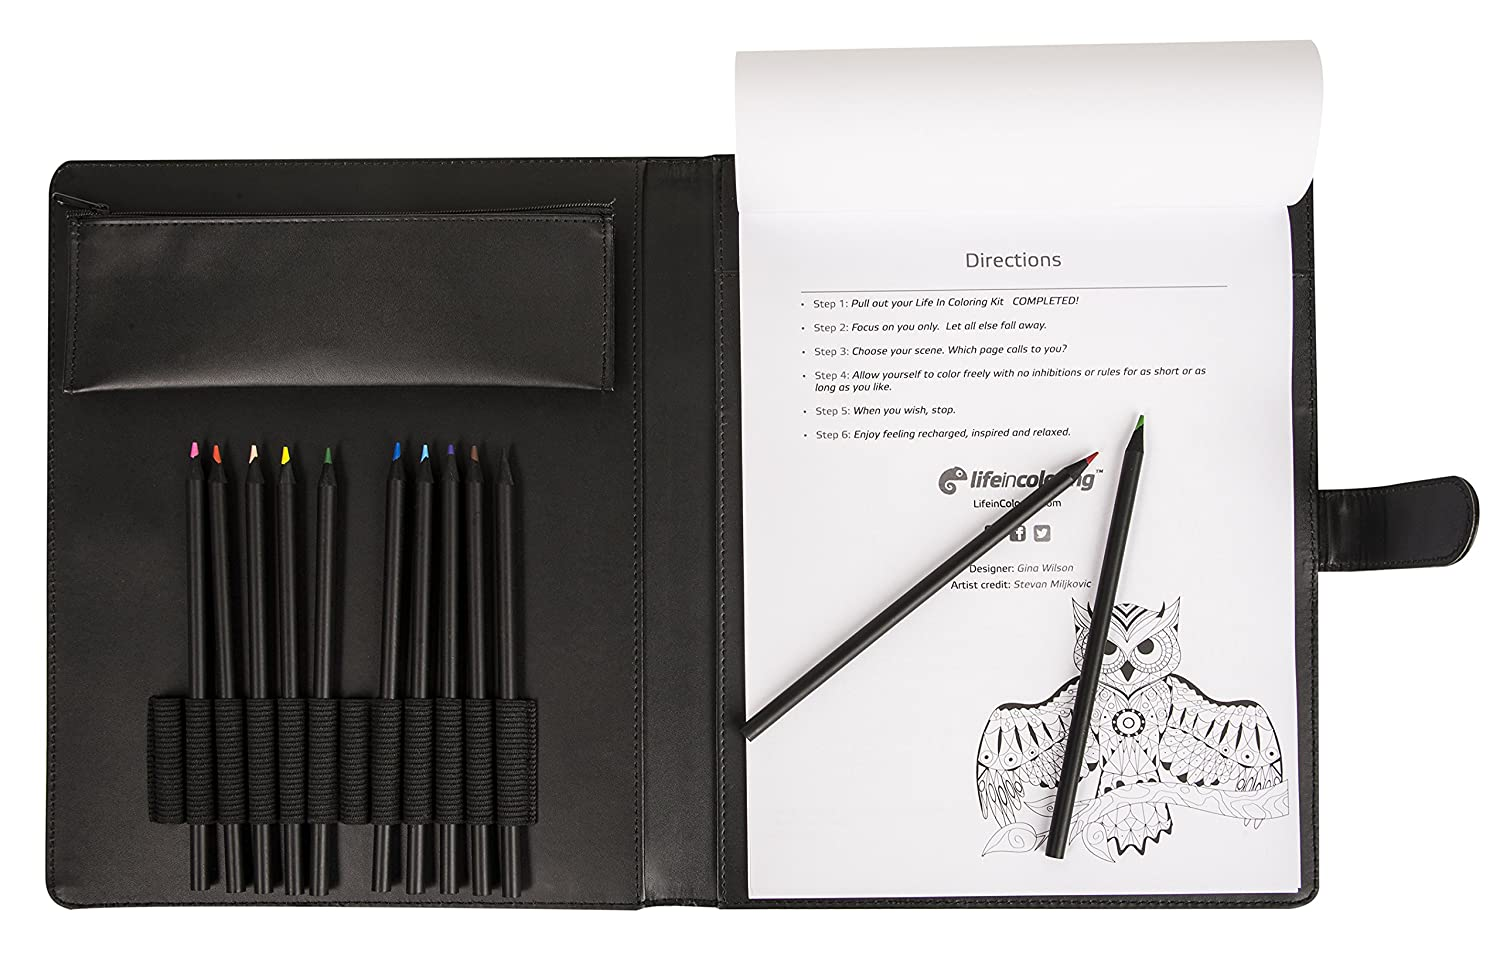 amazoncom complete adult coloring book kit by life in coloring set includes elegant portable refillable travel carrying case features inspirational